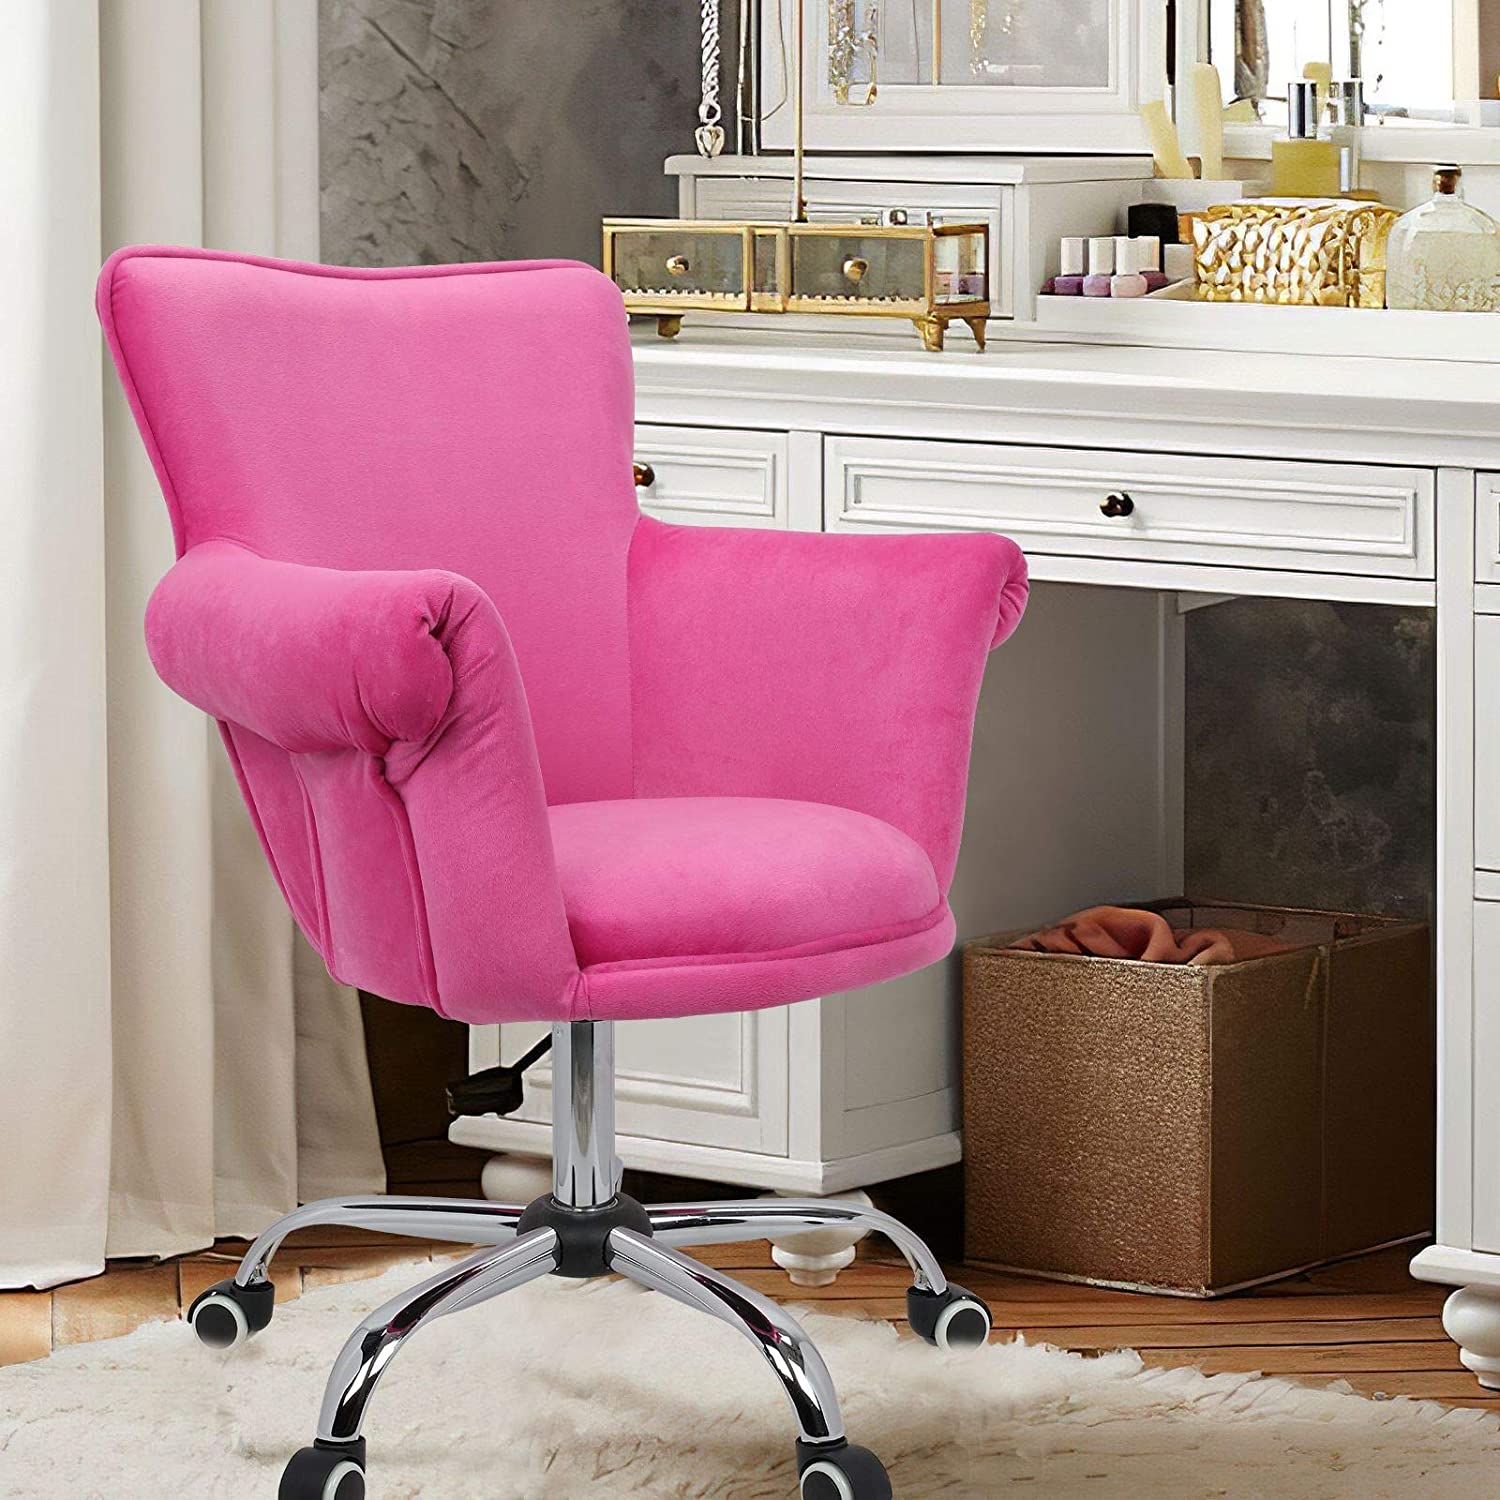 Magshion Deluxe Office Desk Chair Bar Stool Beauty Nail Salon Spa Vanity Seat (Pink)